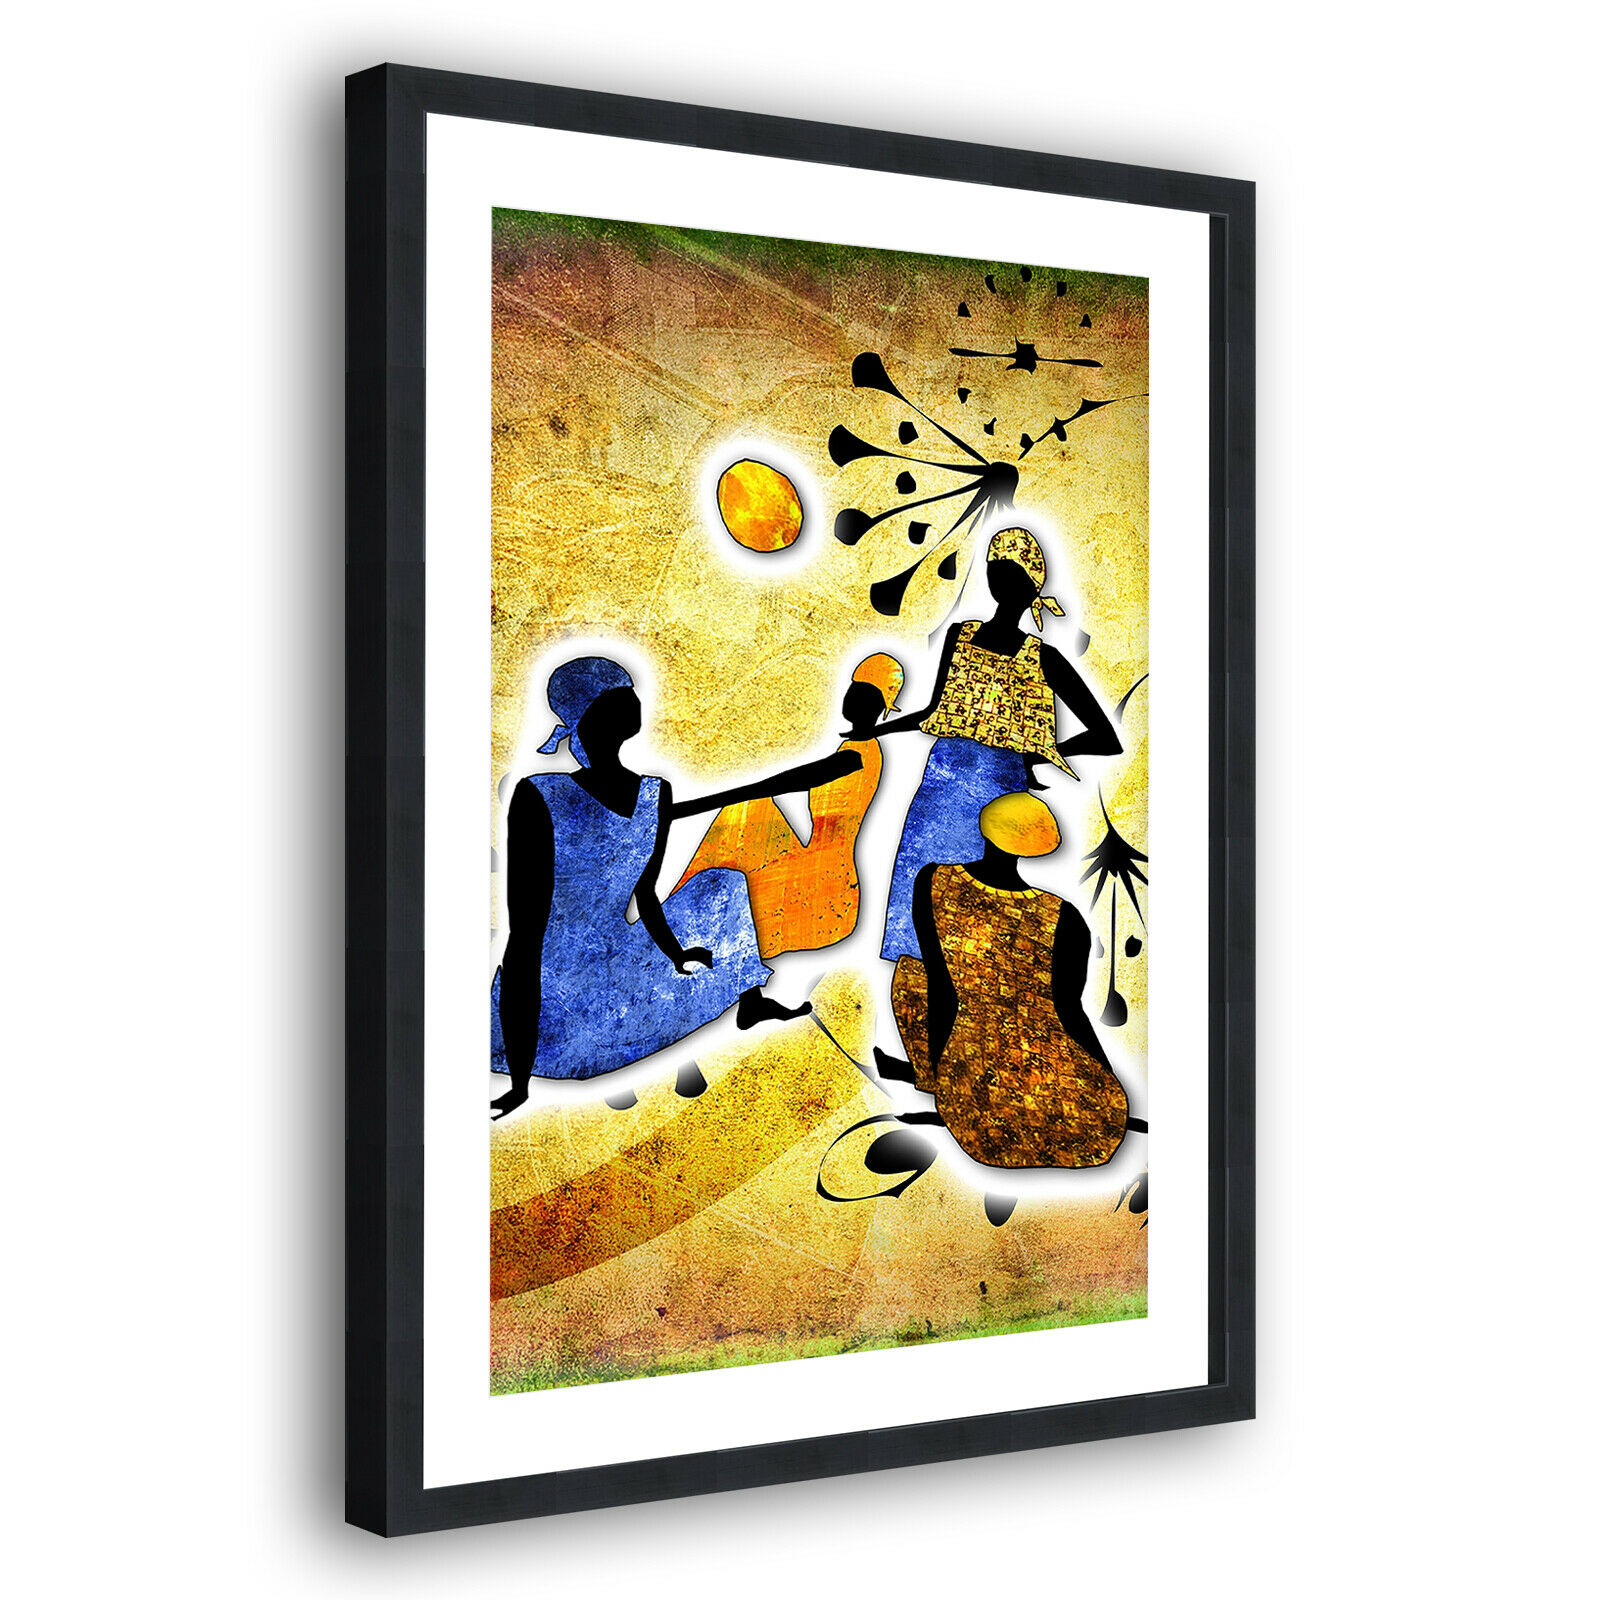 Gelb African Style Modern Portrait Abstract Framed Wall Art Picture Print